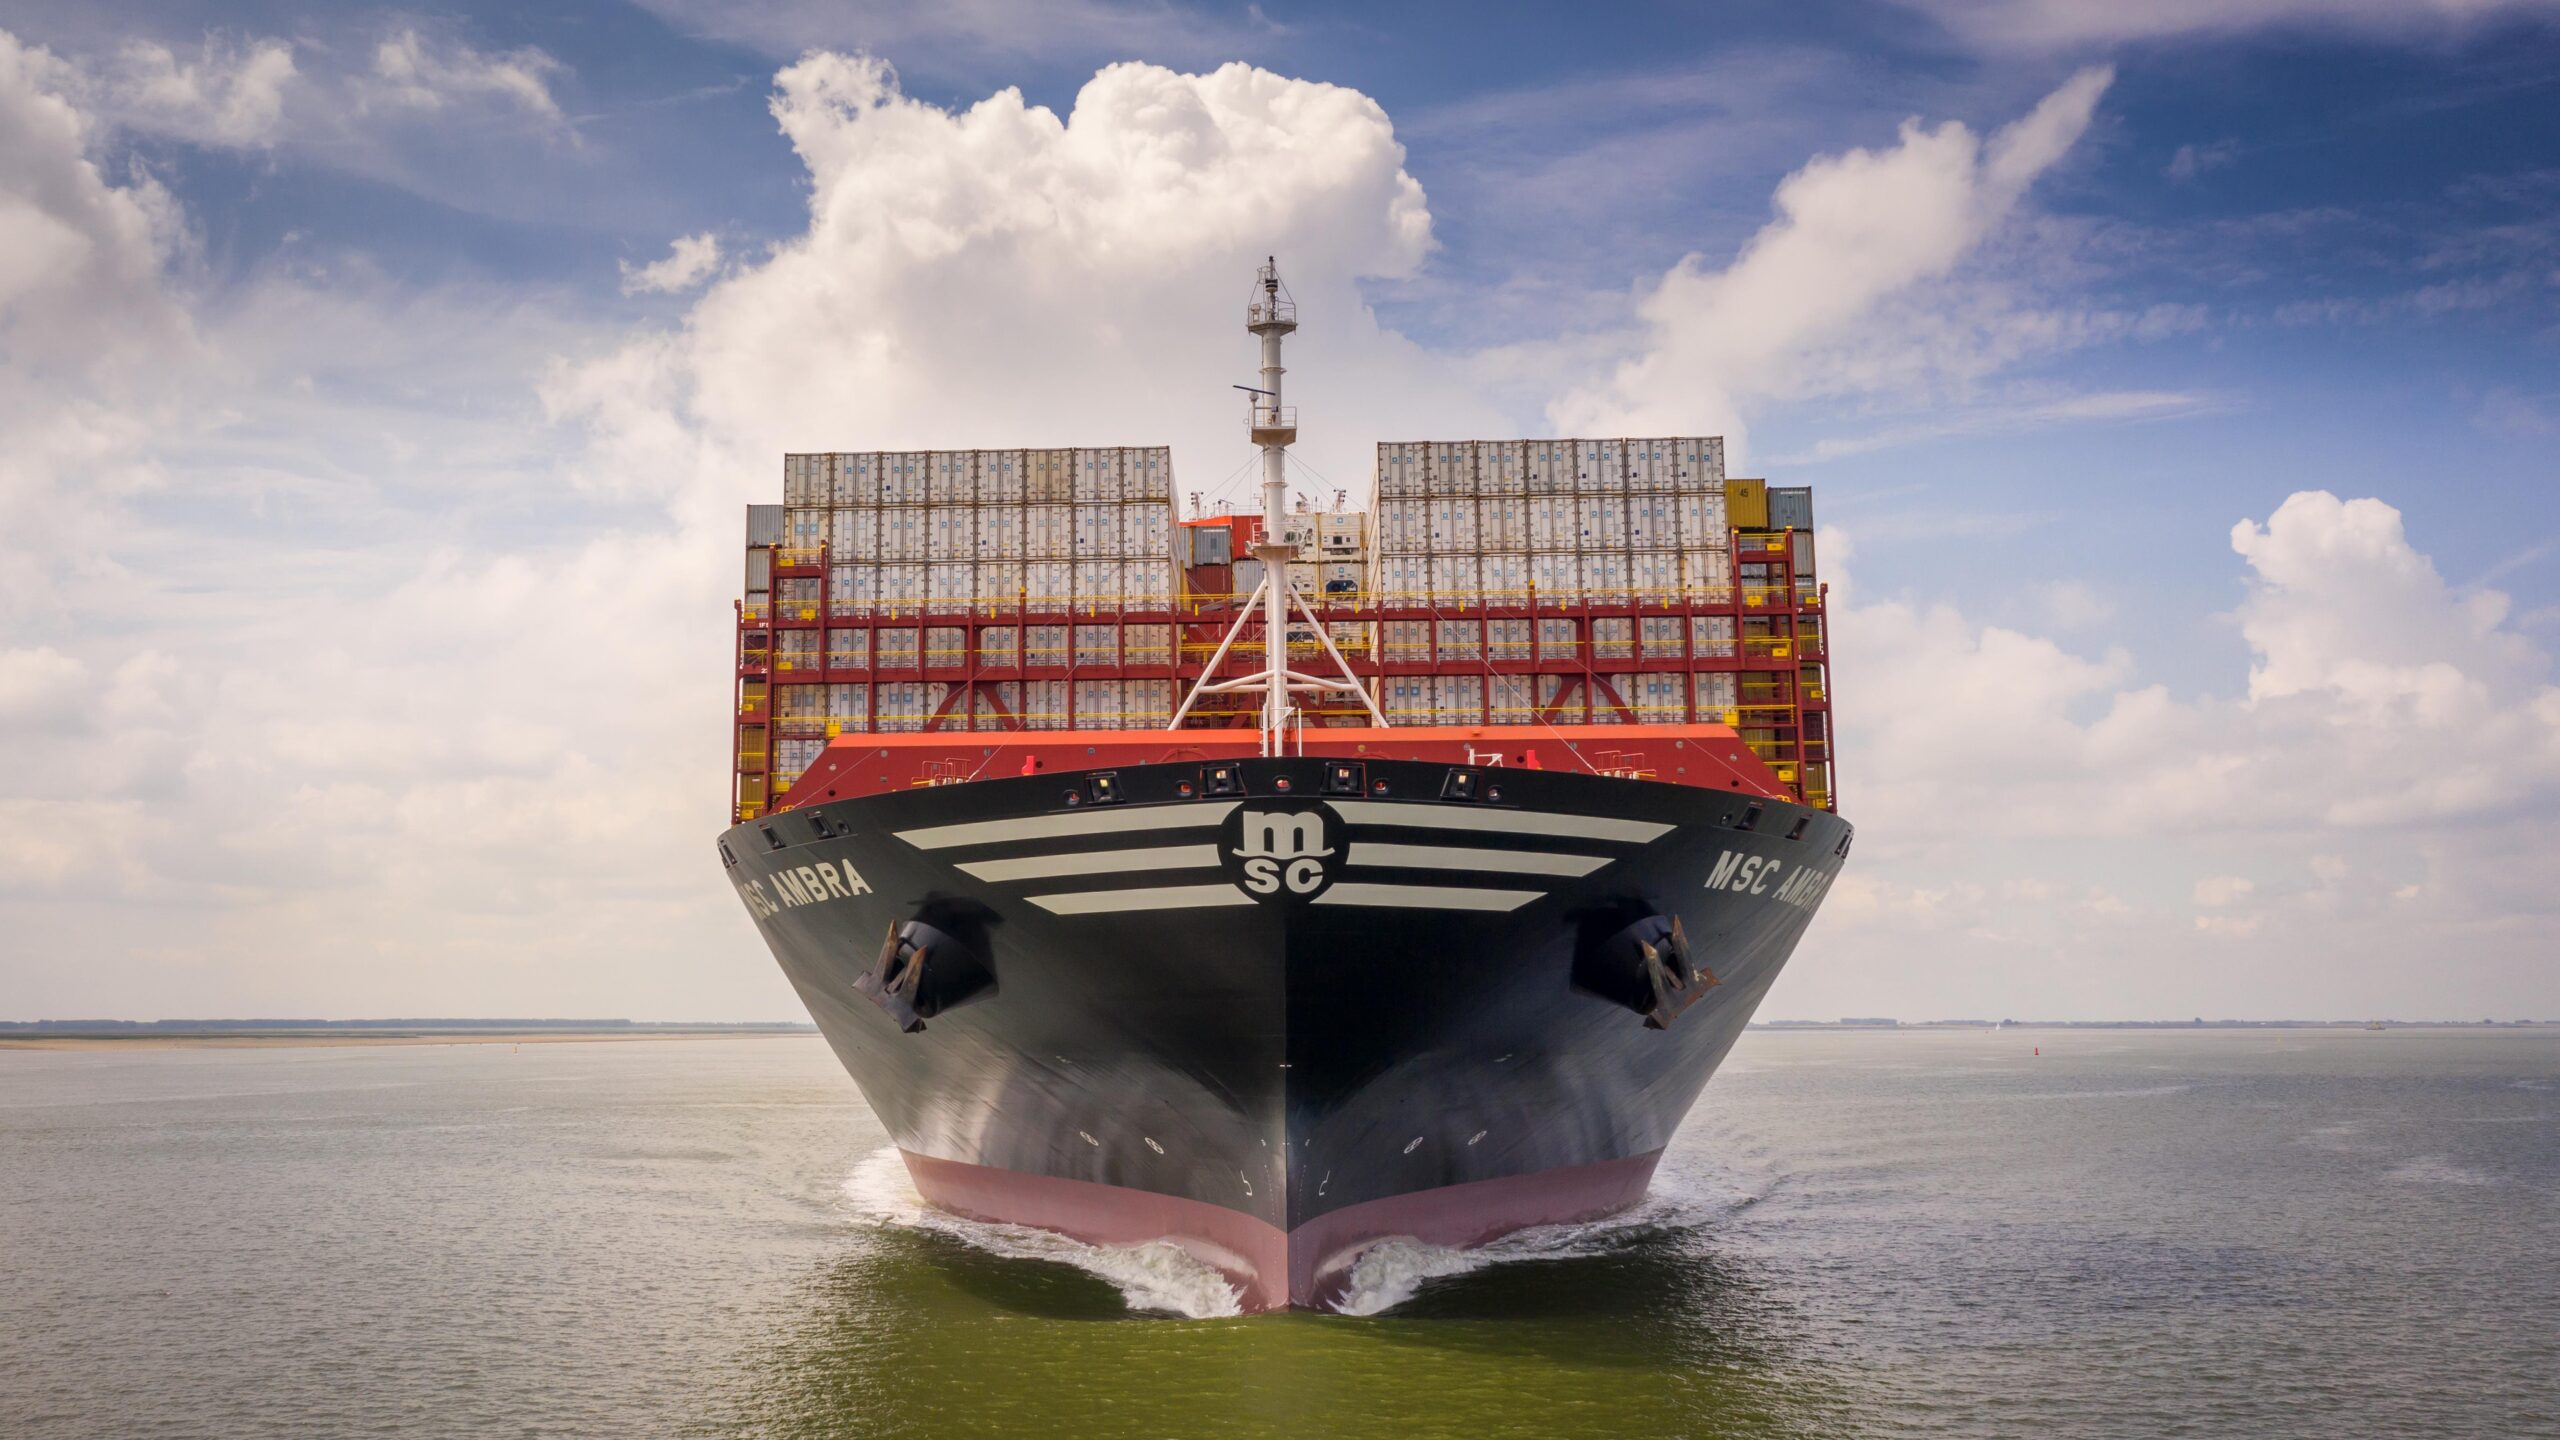 MSC targets #1 ranking as global container carrier 1